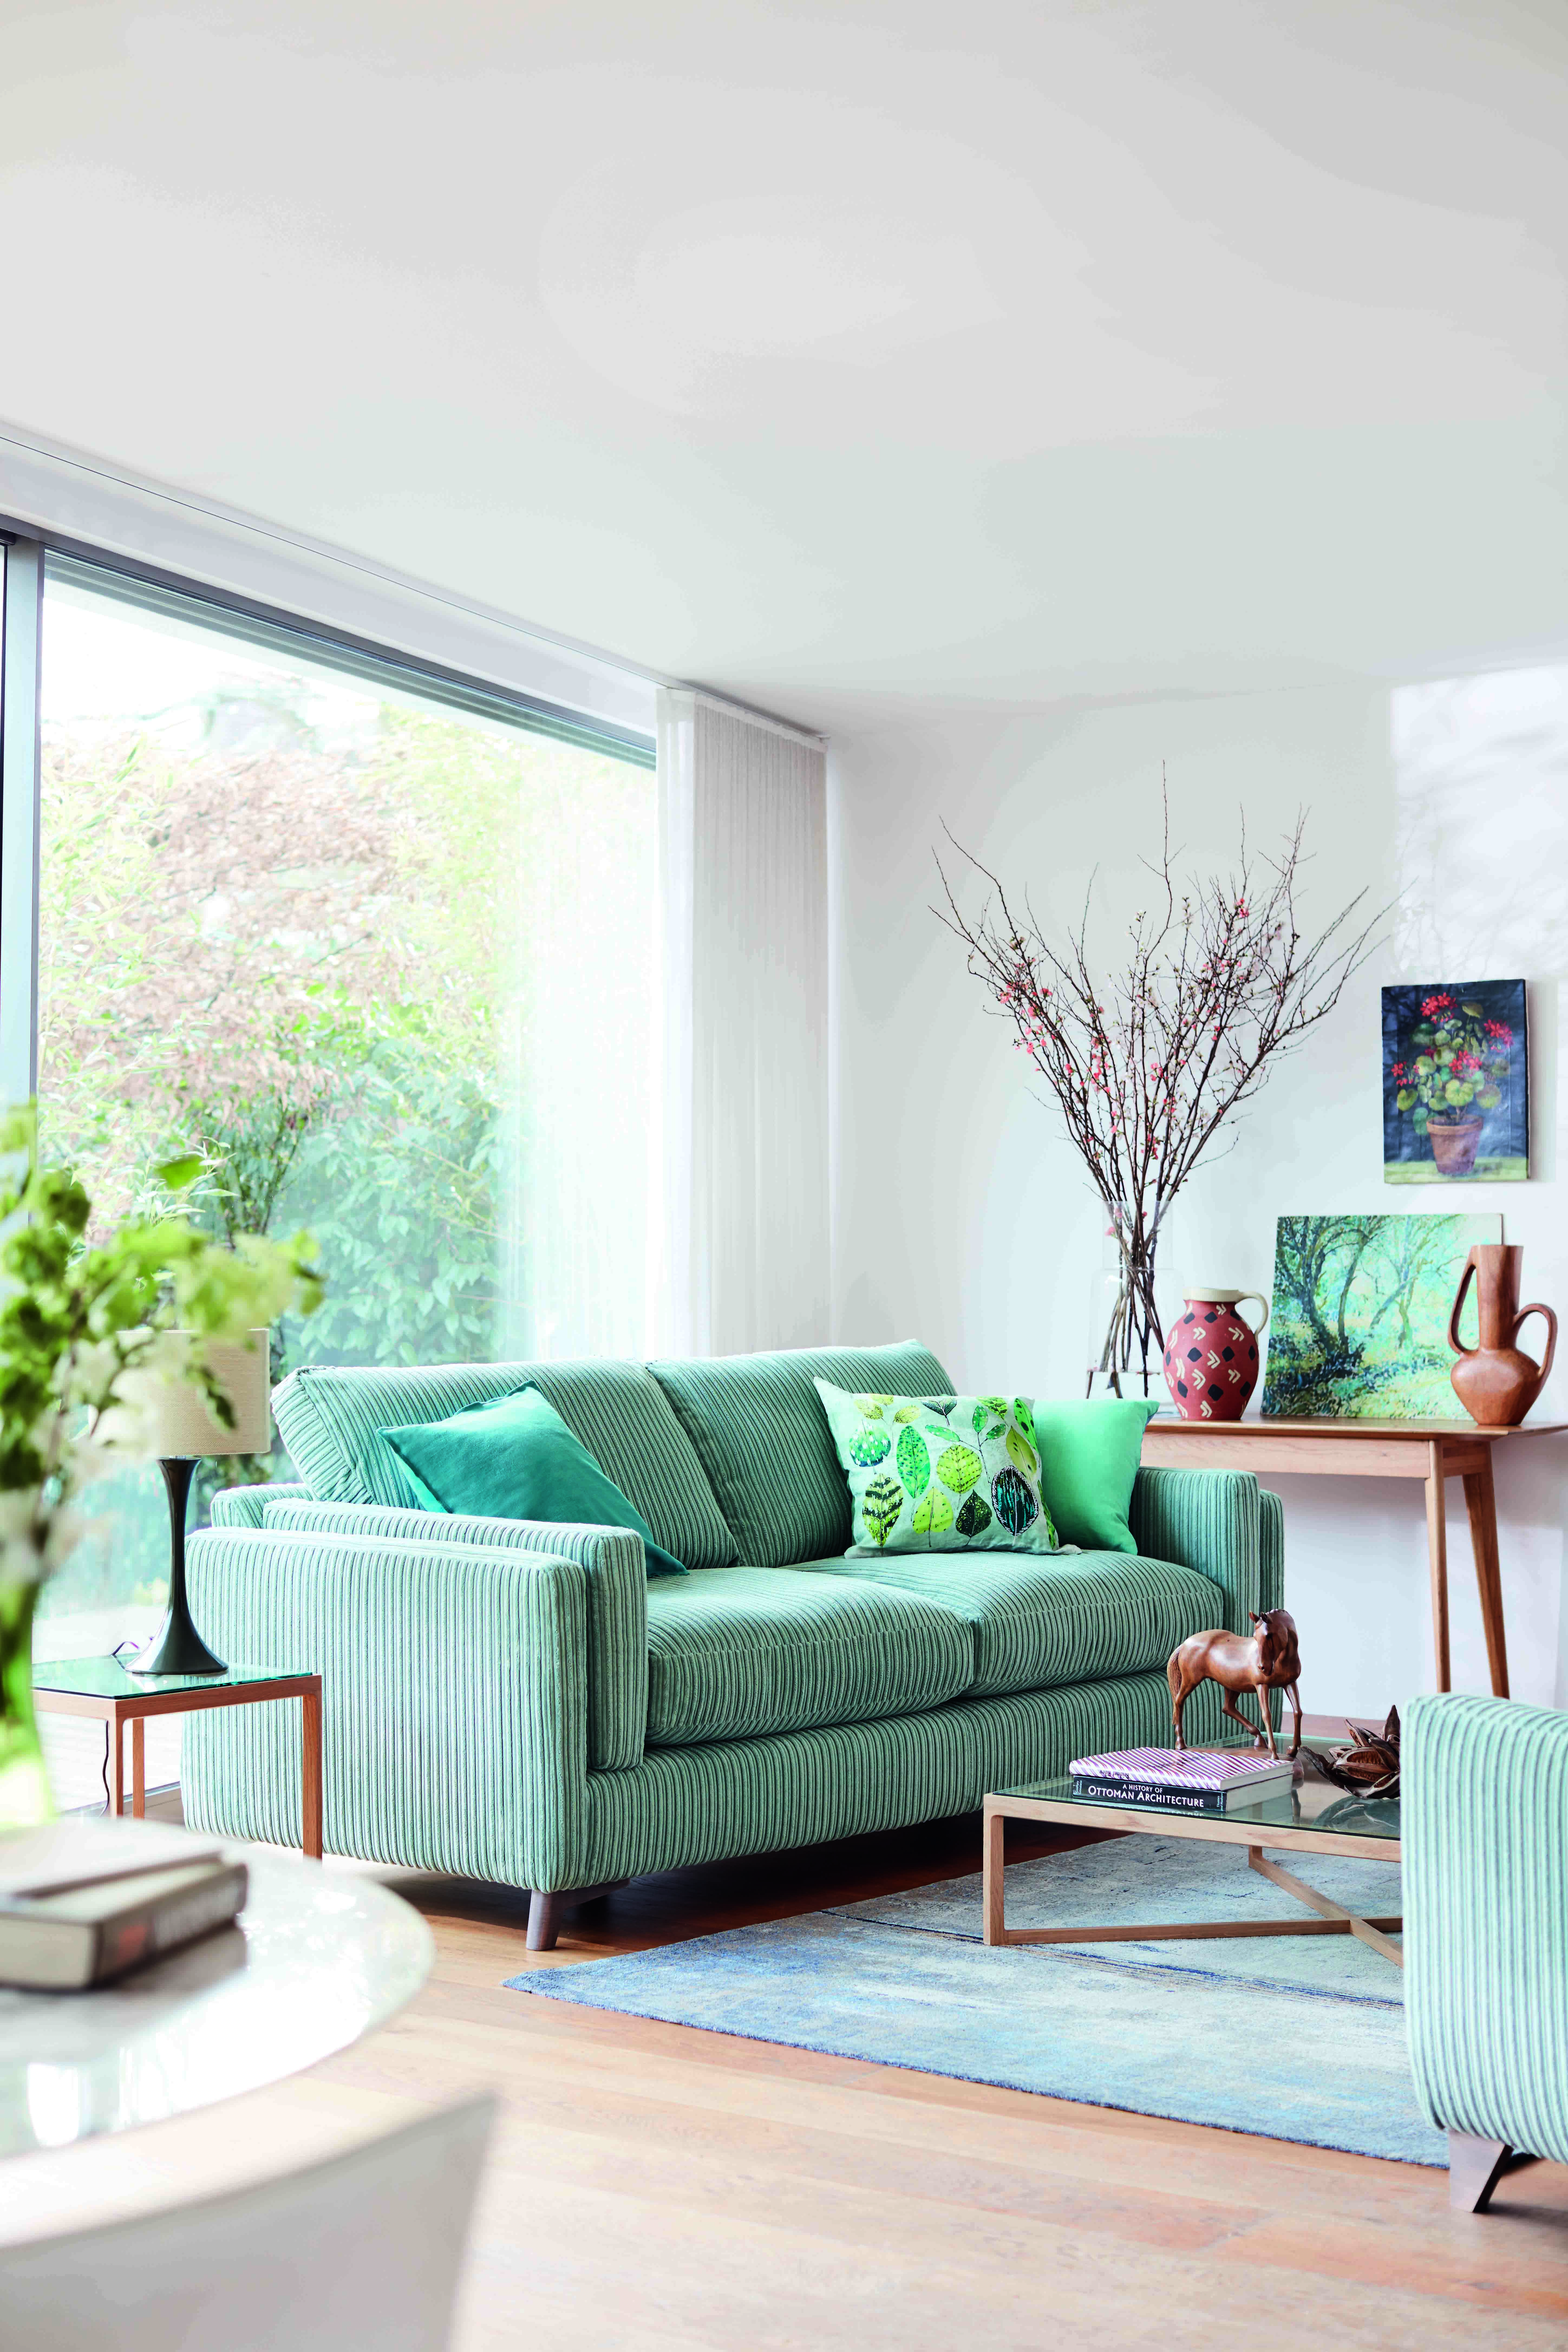 Living Room, Wooden Floor, White Wall, Green Striped Sofa And Chairs, Low Coffee Table, Wooden Console Table